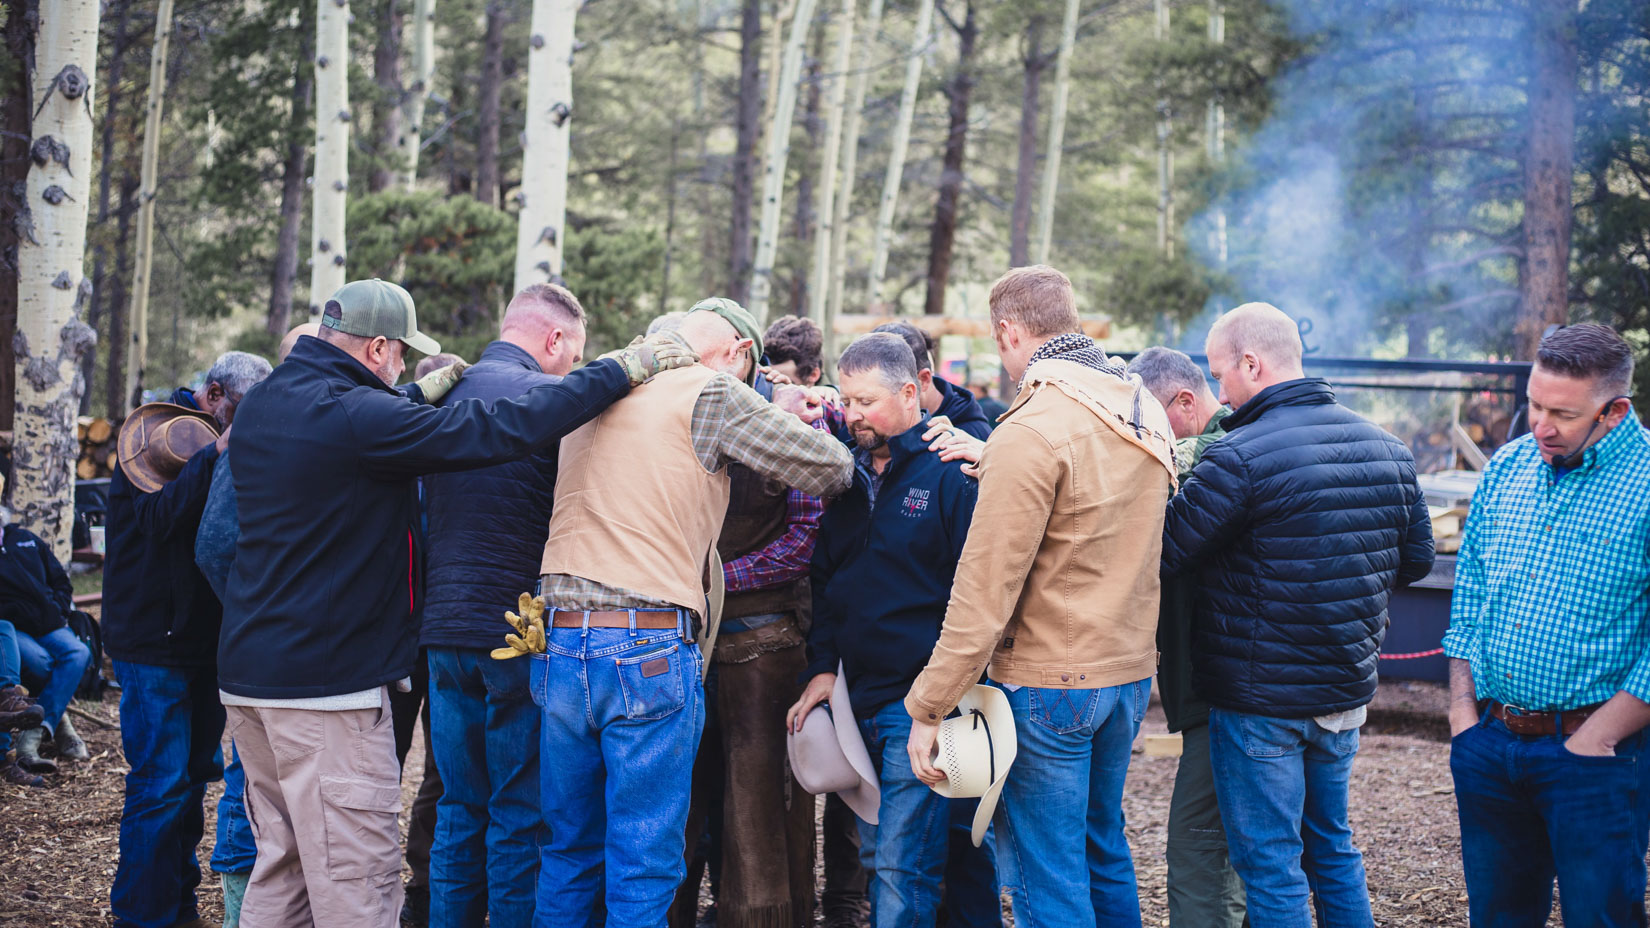 Group huddle of men hugging one another.